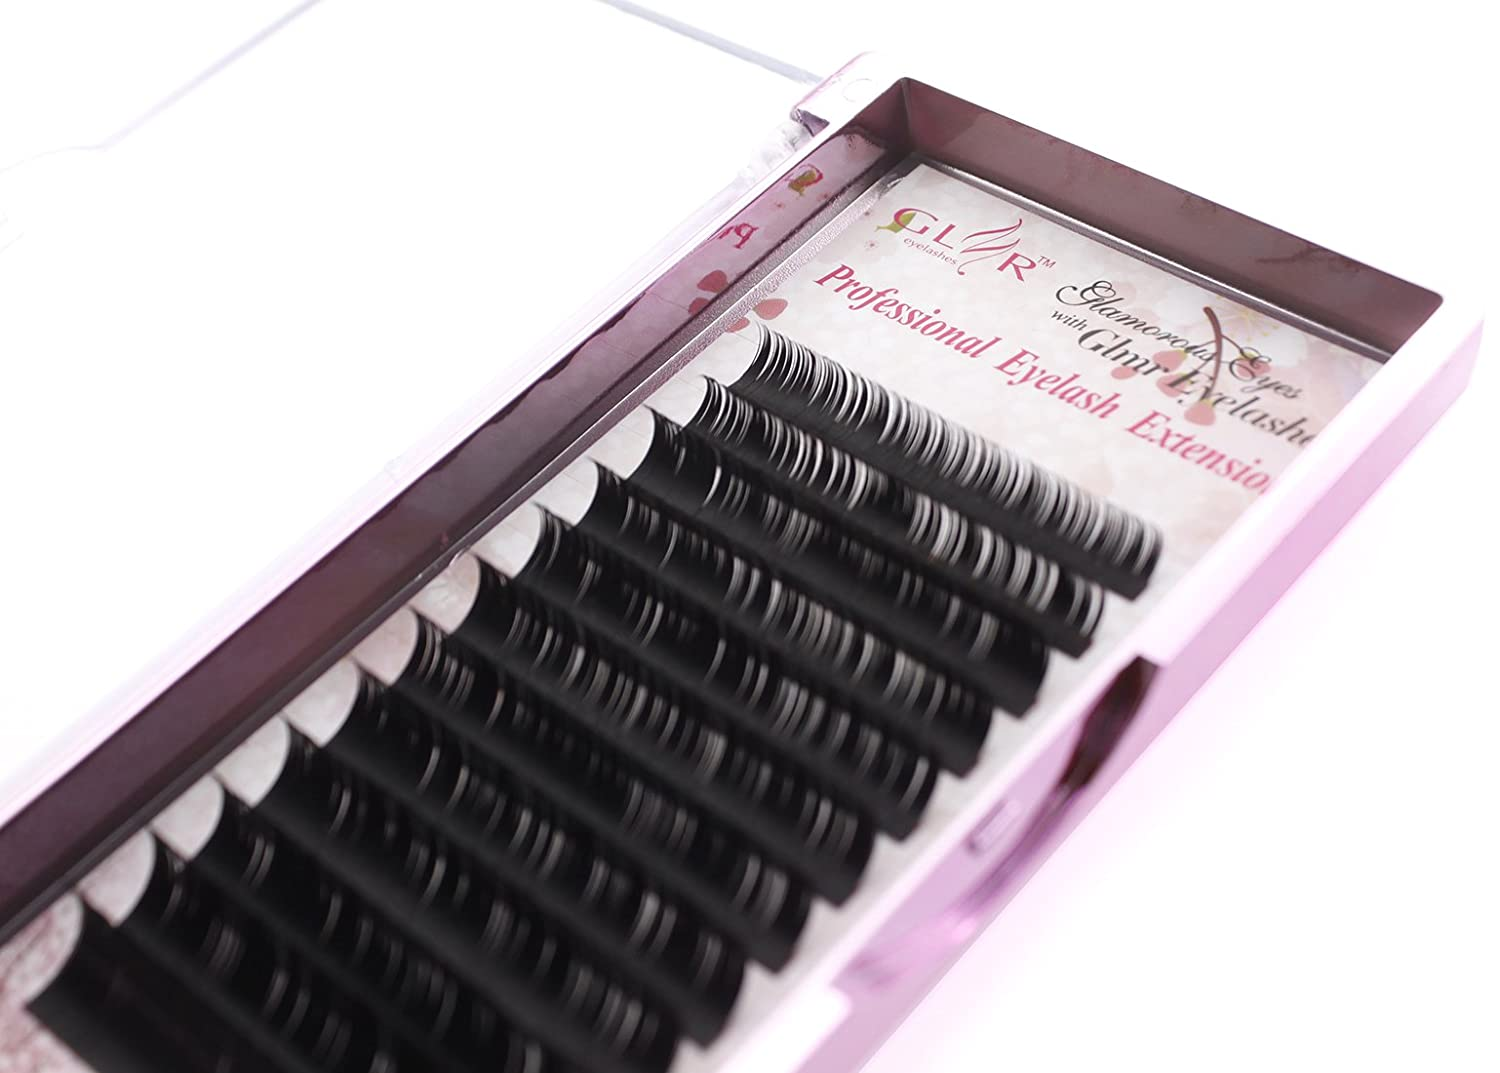 Volume Faux Mink Eyelash Extensions 0.07mm Thickness B Curl 8-14mm Mixed Individual Light Natural Lash Extensions Soft Application for Professional Salon Use (0.07-B Curl-mix) GLMR 0.07 B Curl Mix